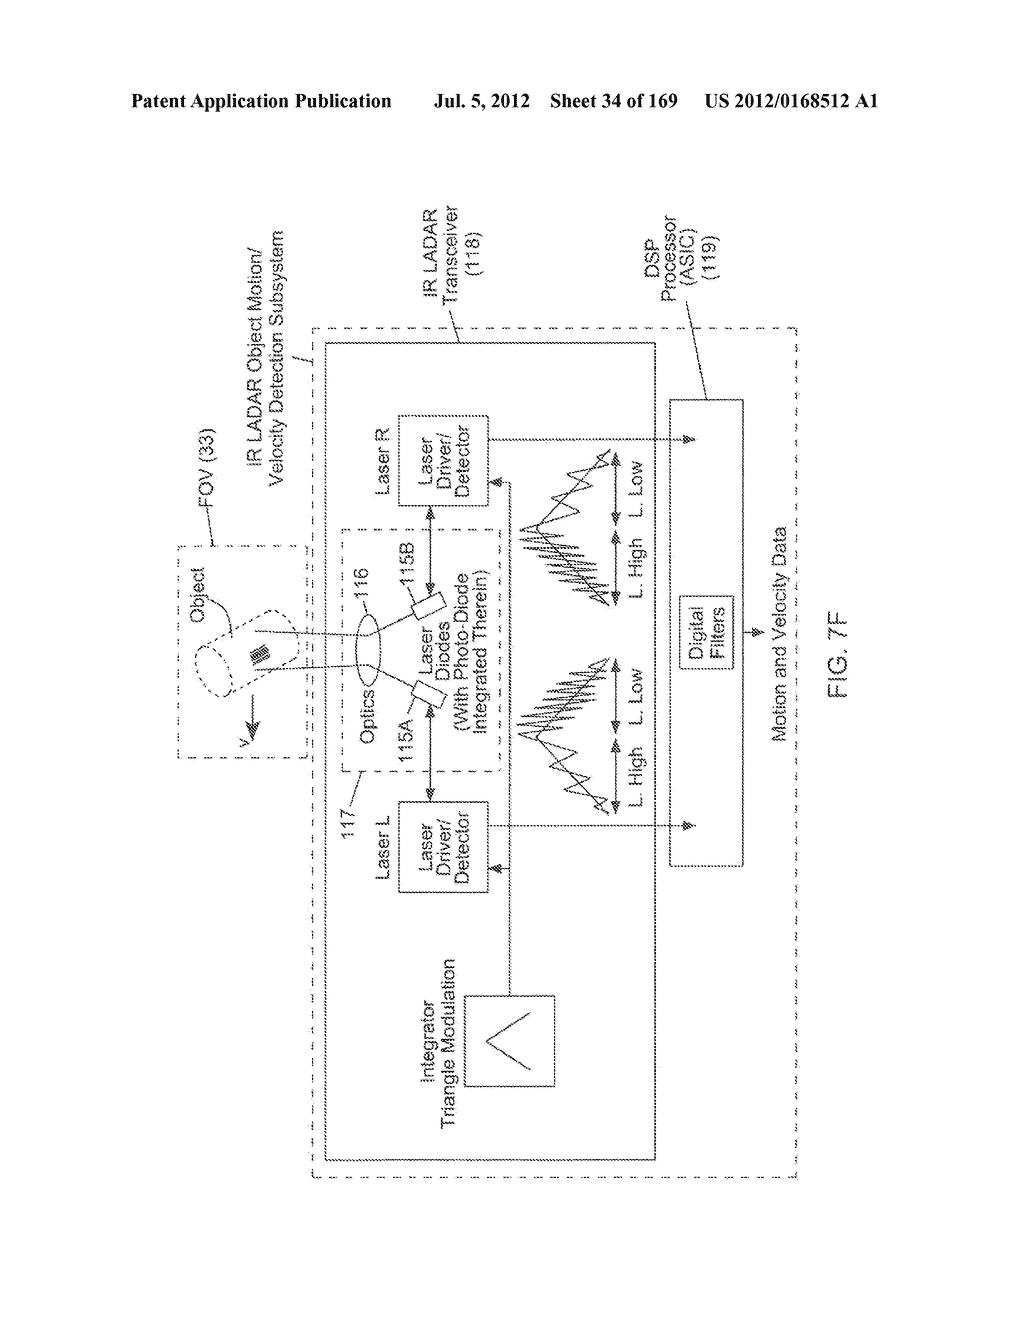 Optical Code Symbol Reading System Employing A Led Driven Circuit Waveguide Structure For Illuminating Manually Actuated Trigger Switch Integrated Within